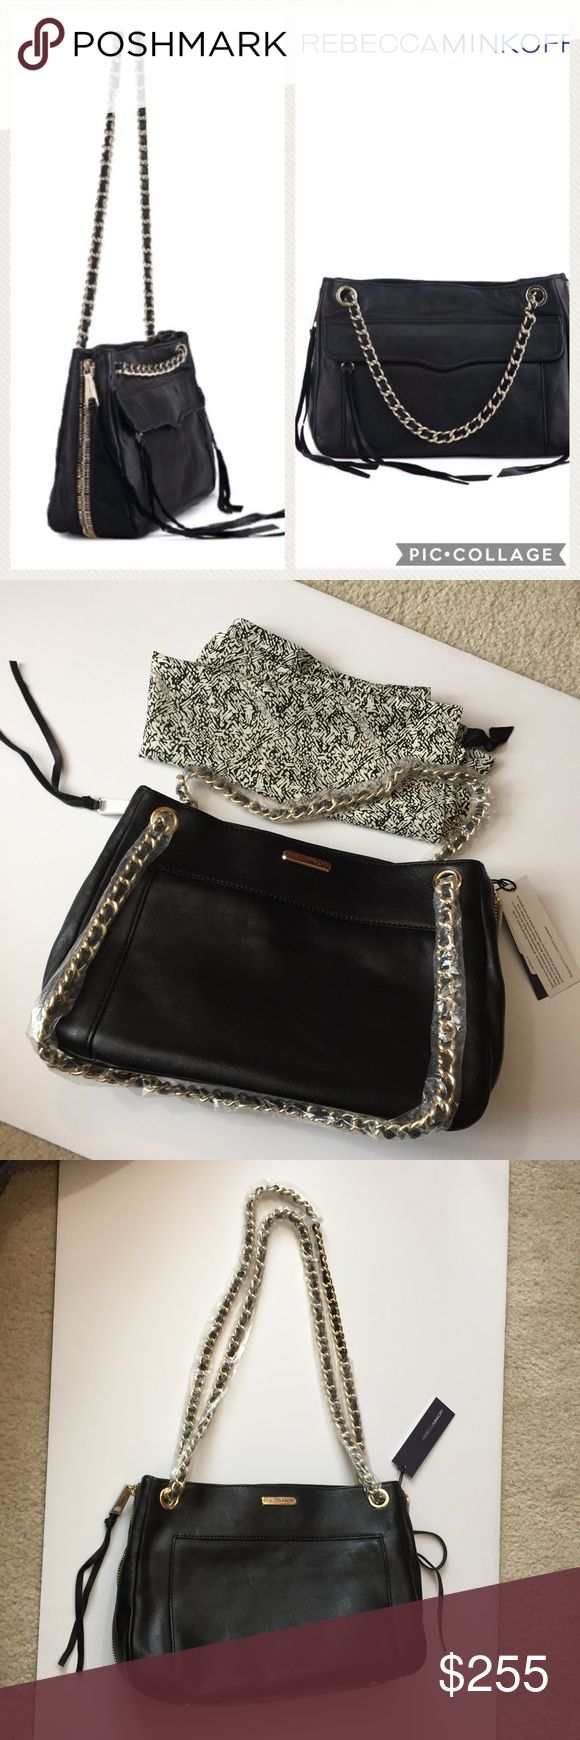 "NWT Rebecca Minkoff Black Swing Purse NWT Rebecca Minkoff Black Swing Purse. Approximately 11"" wide 7"" high and 4"" deep. Genuine leather. Side zippers open to expand interior space. Gold metal with black straps! Can be worn with one strap long or both straps short. Wearing either way allows to put purse over shoulder. Dust bag included. Rebecca Minkoff Bags Shoulder Bags"